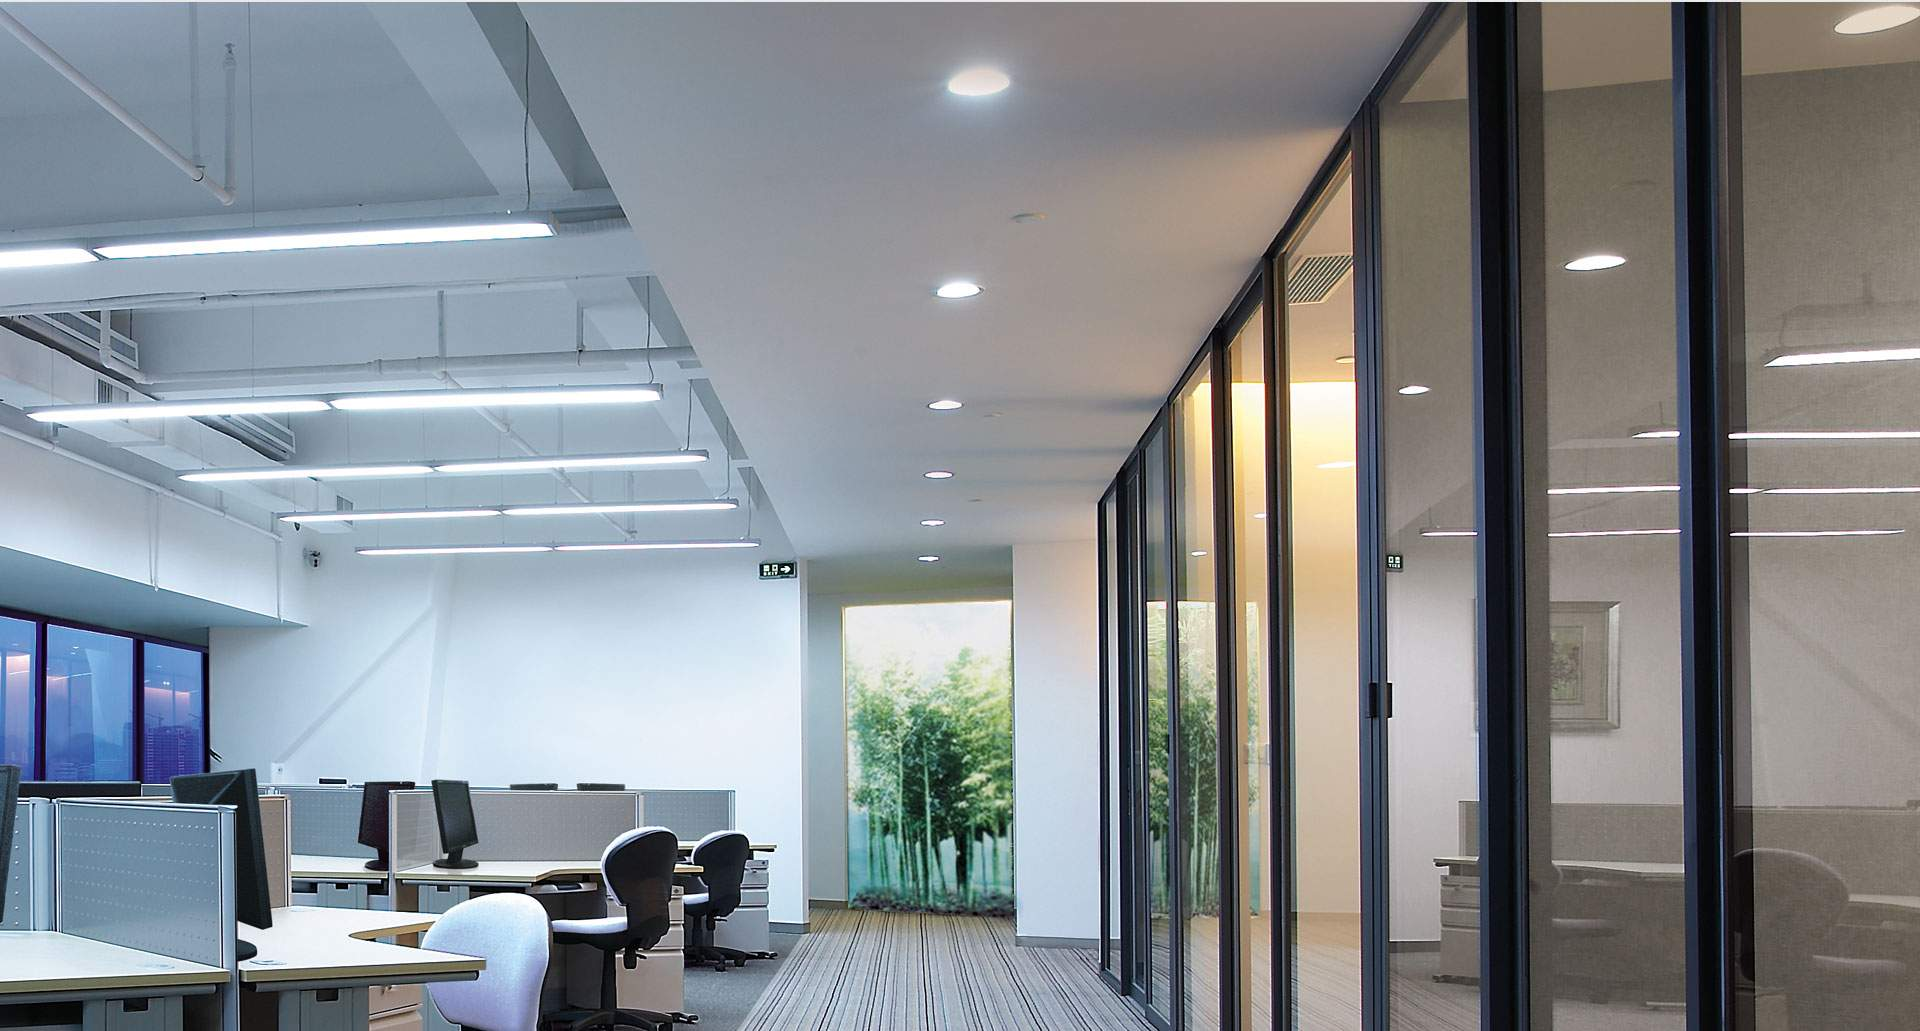 7 Essential Tips for Installing LED Downlights